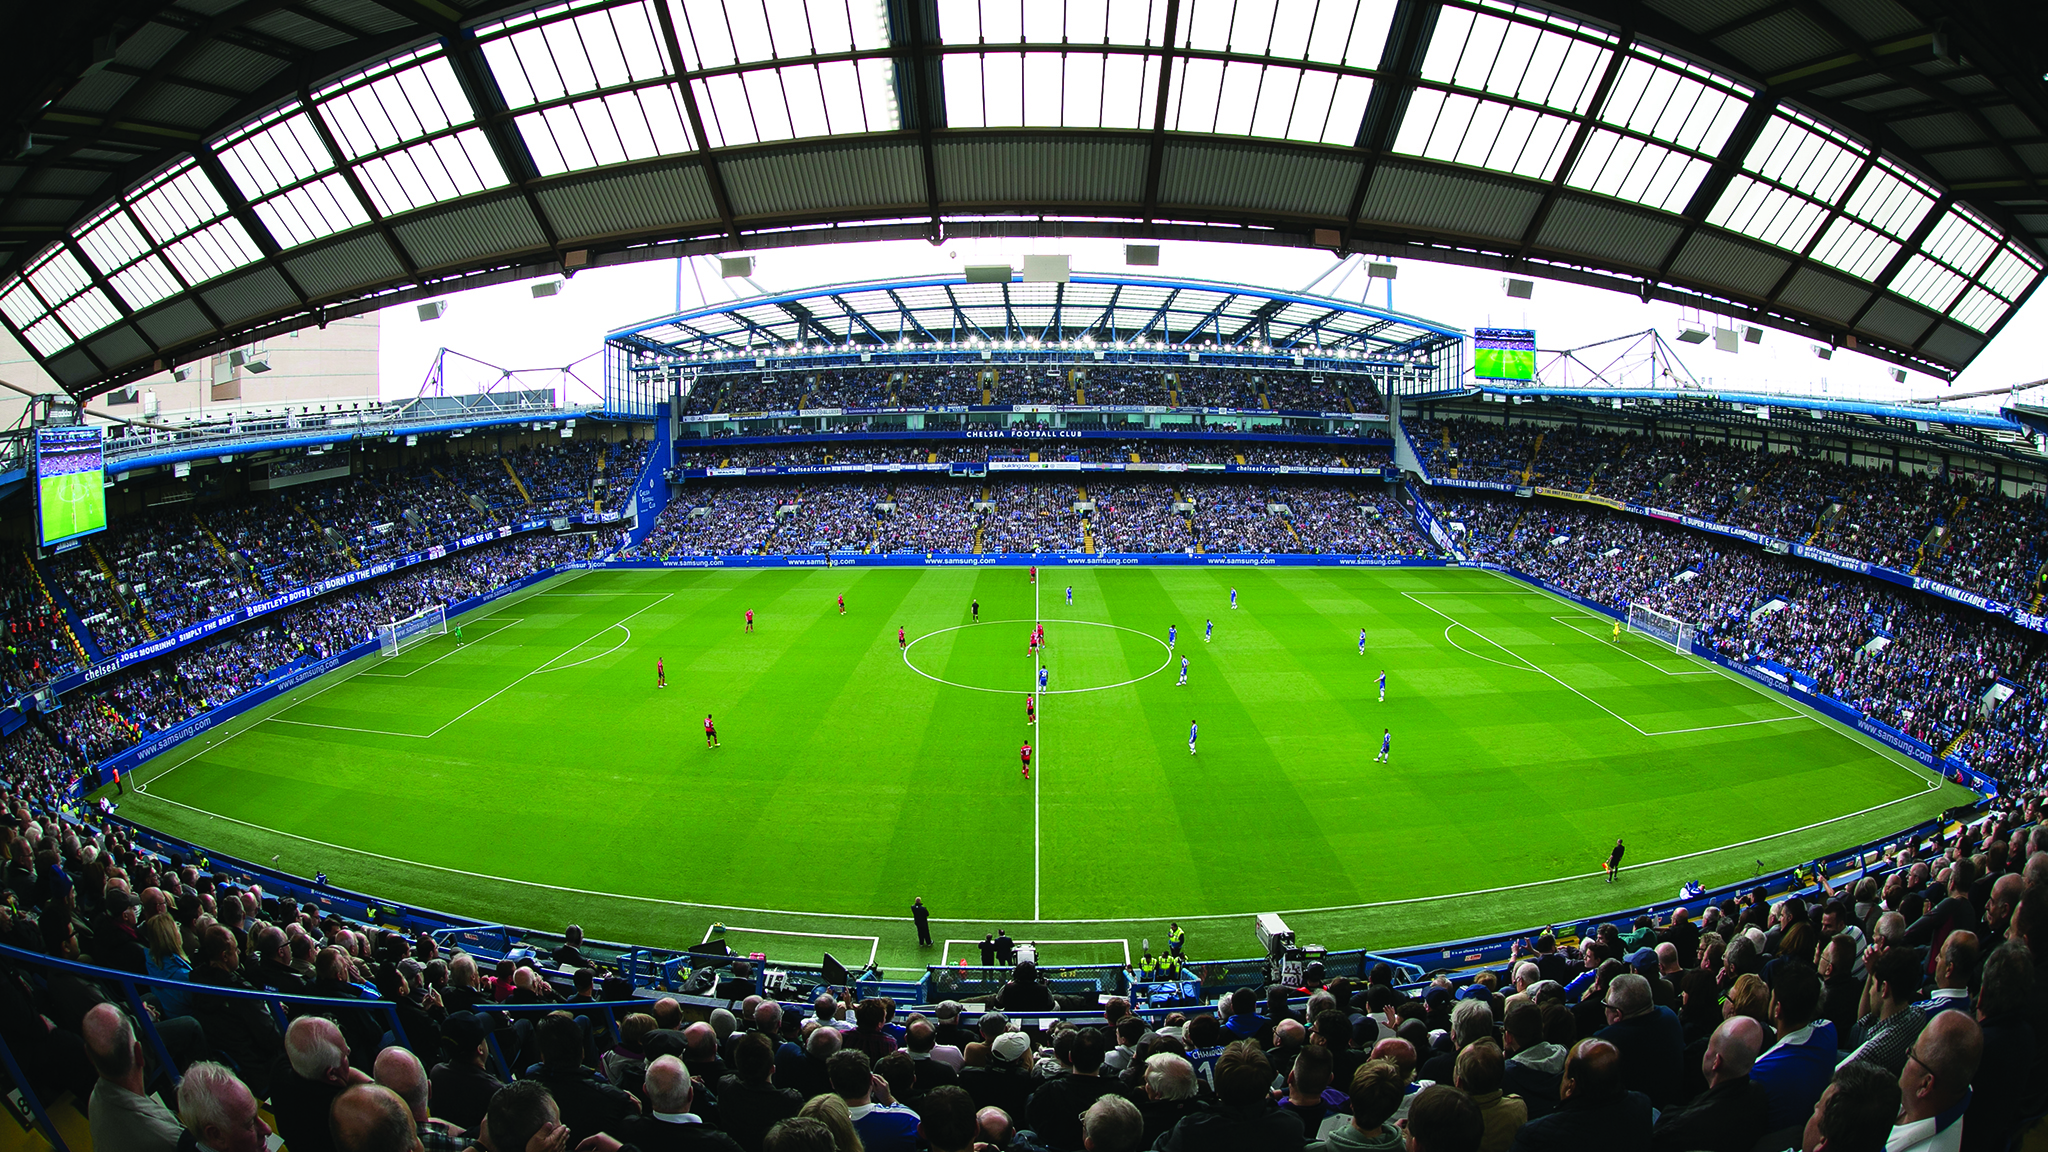 Chelsea F.C. High Quality Background on Wallpapers Vista